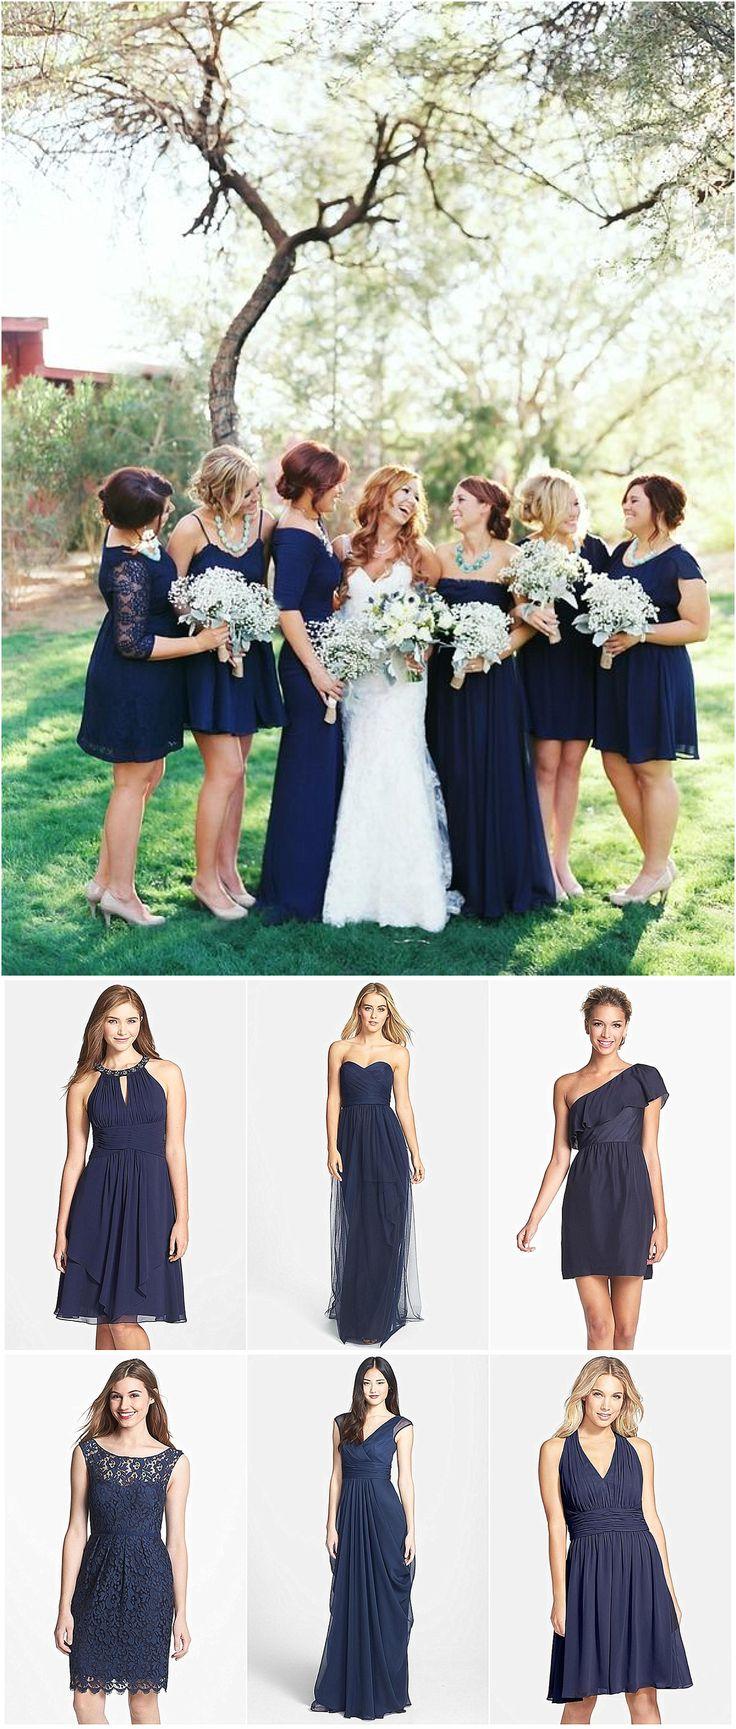 Navy Bridesmaid dress ideas. photo by Brushfire Photography. Really like the navy color for fall.